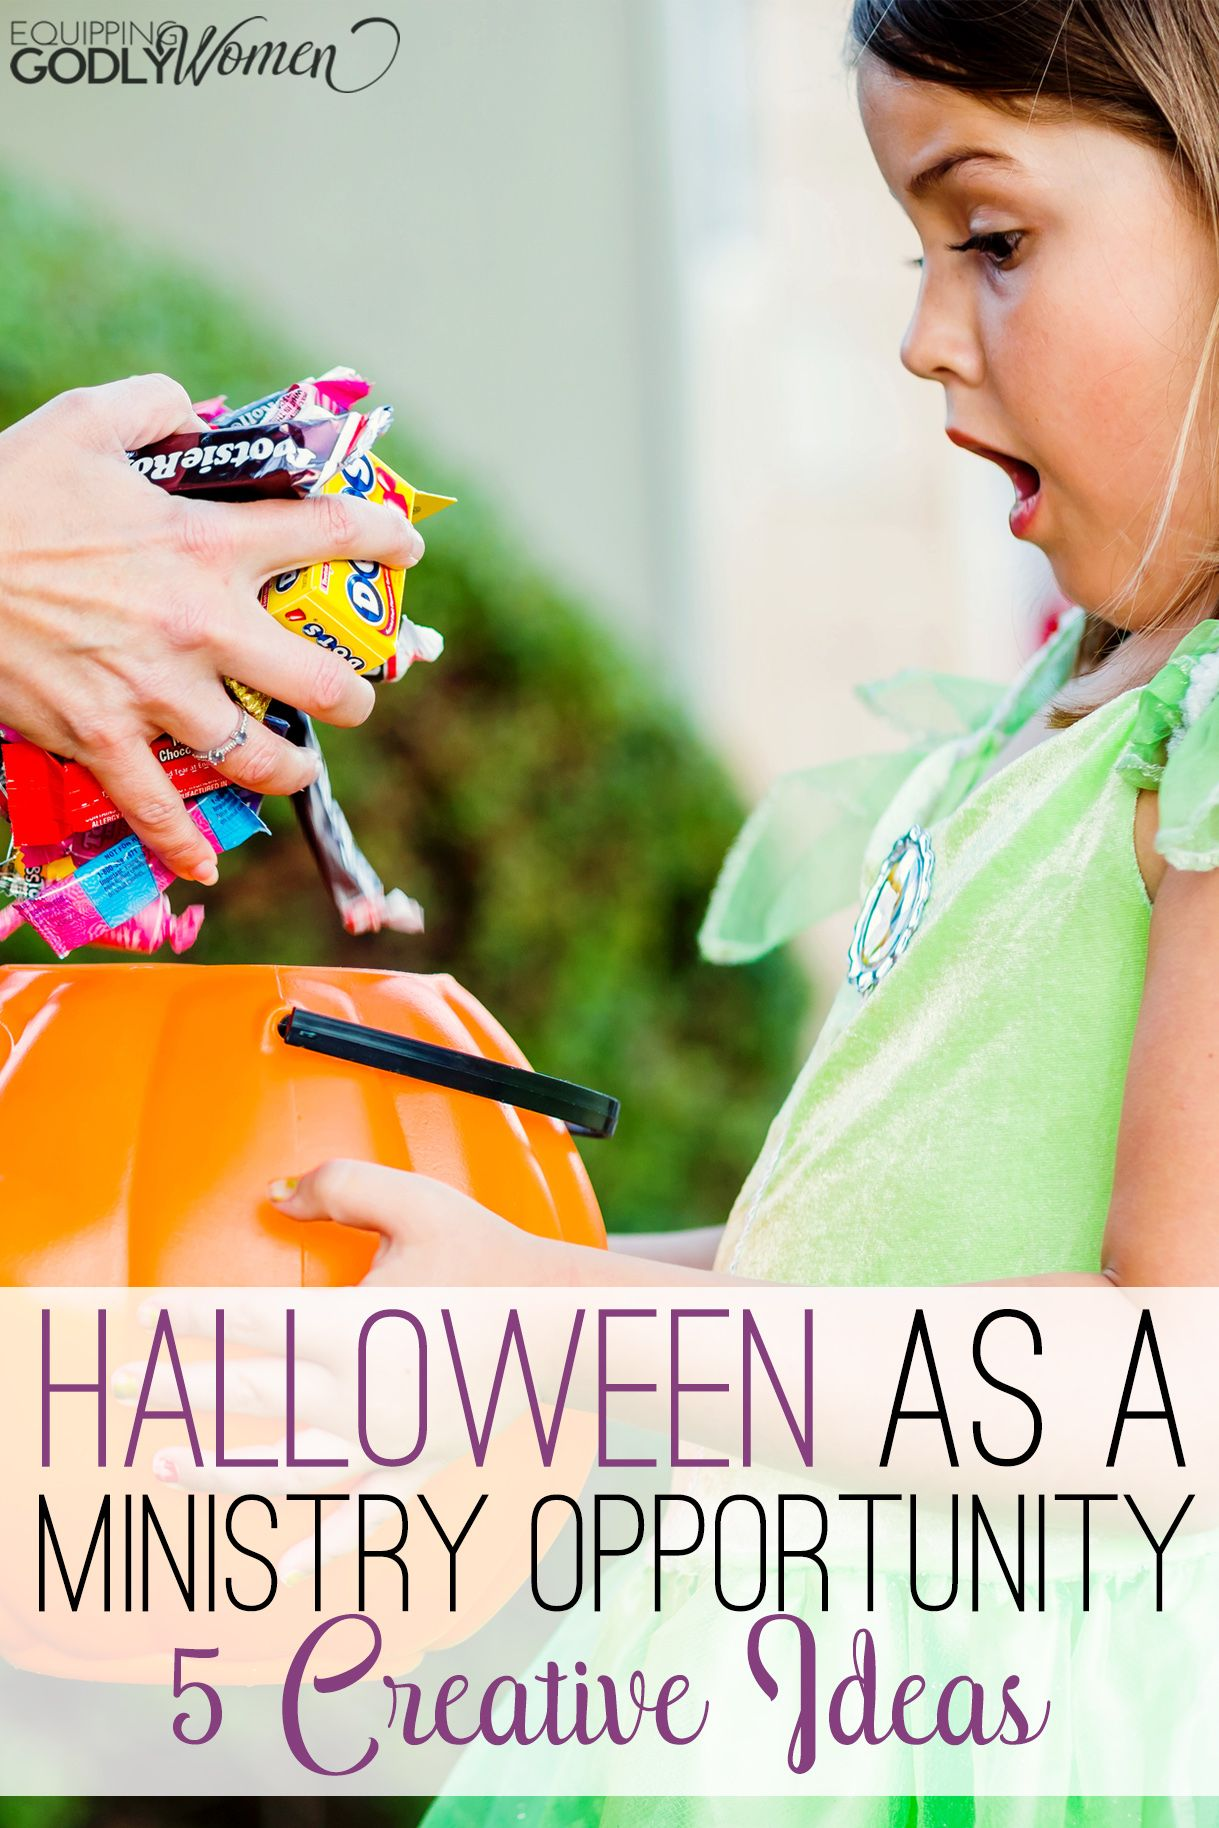 Christian Halloween Party Ideas.Pin On Strong Family Project